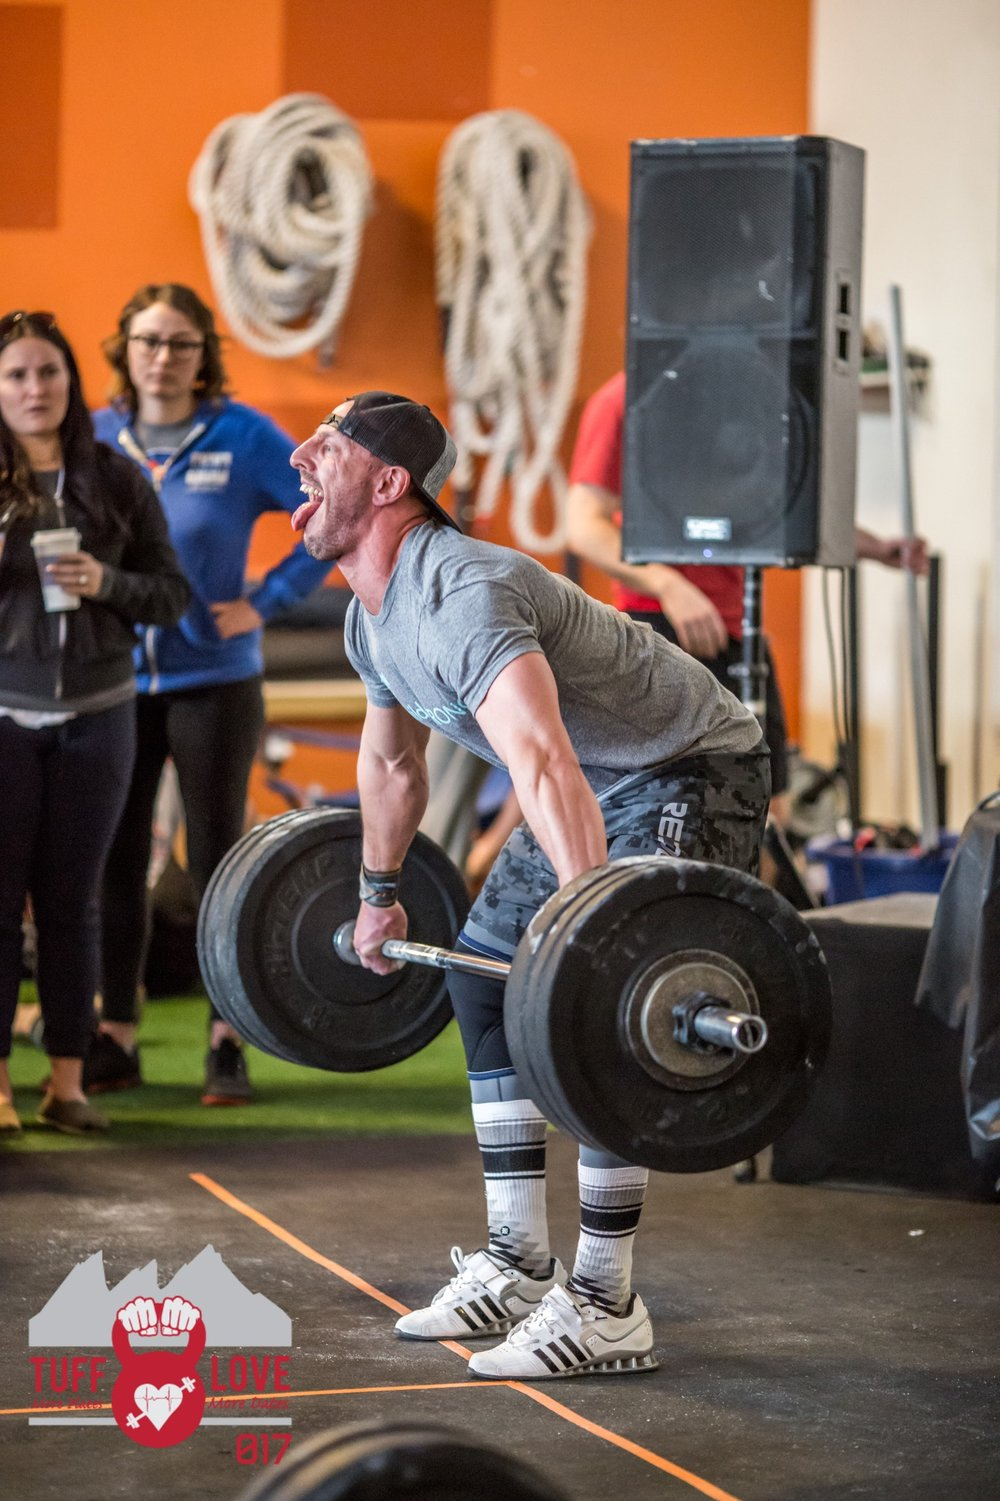 Seth Waggener during the 1rm Snatch event at 2017 Tuff Love at CrossFit Sanitas. Photo: Scott Brayshaw.